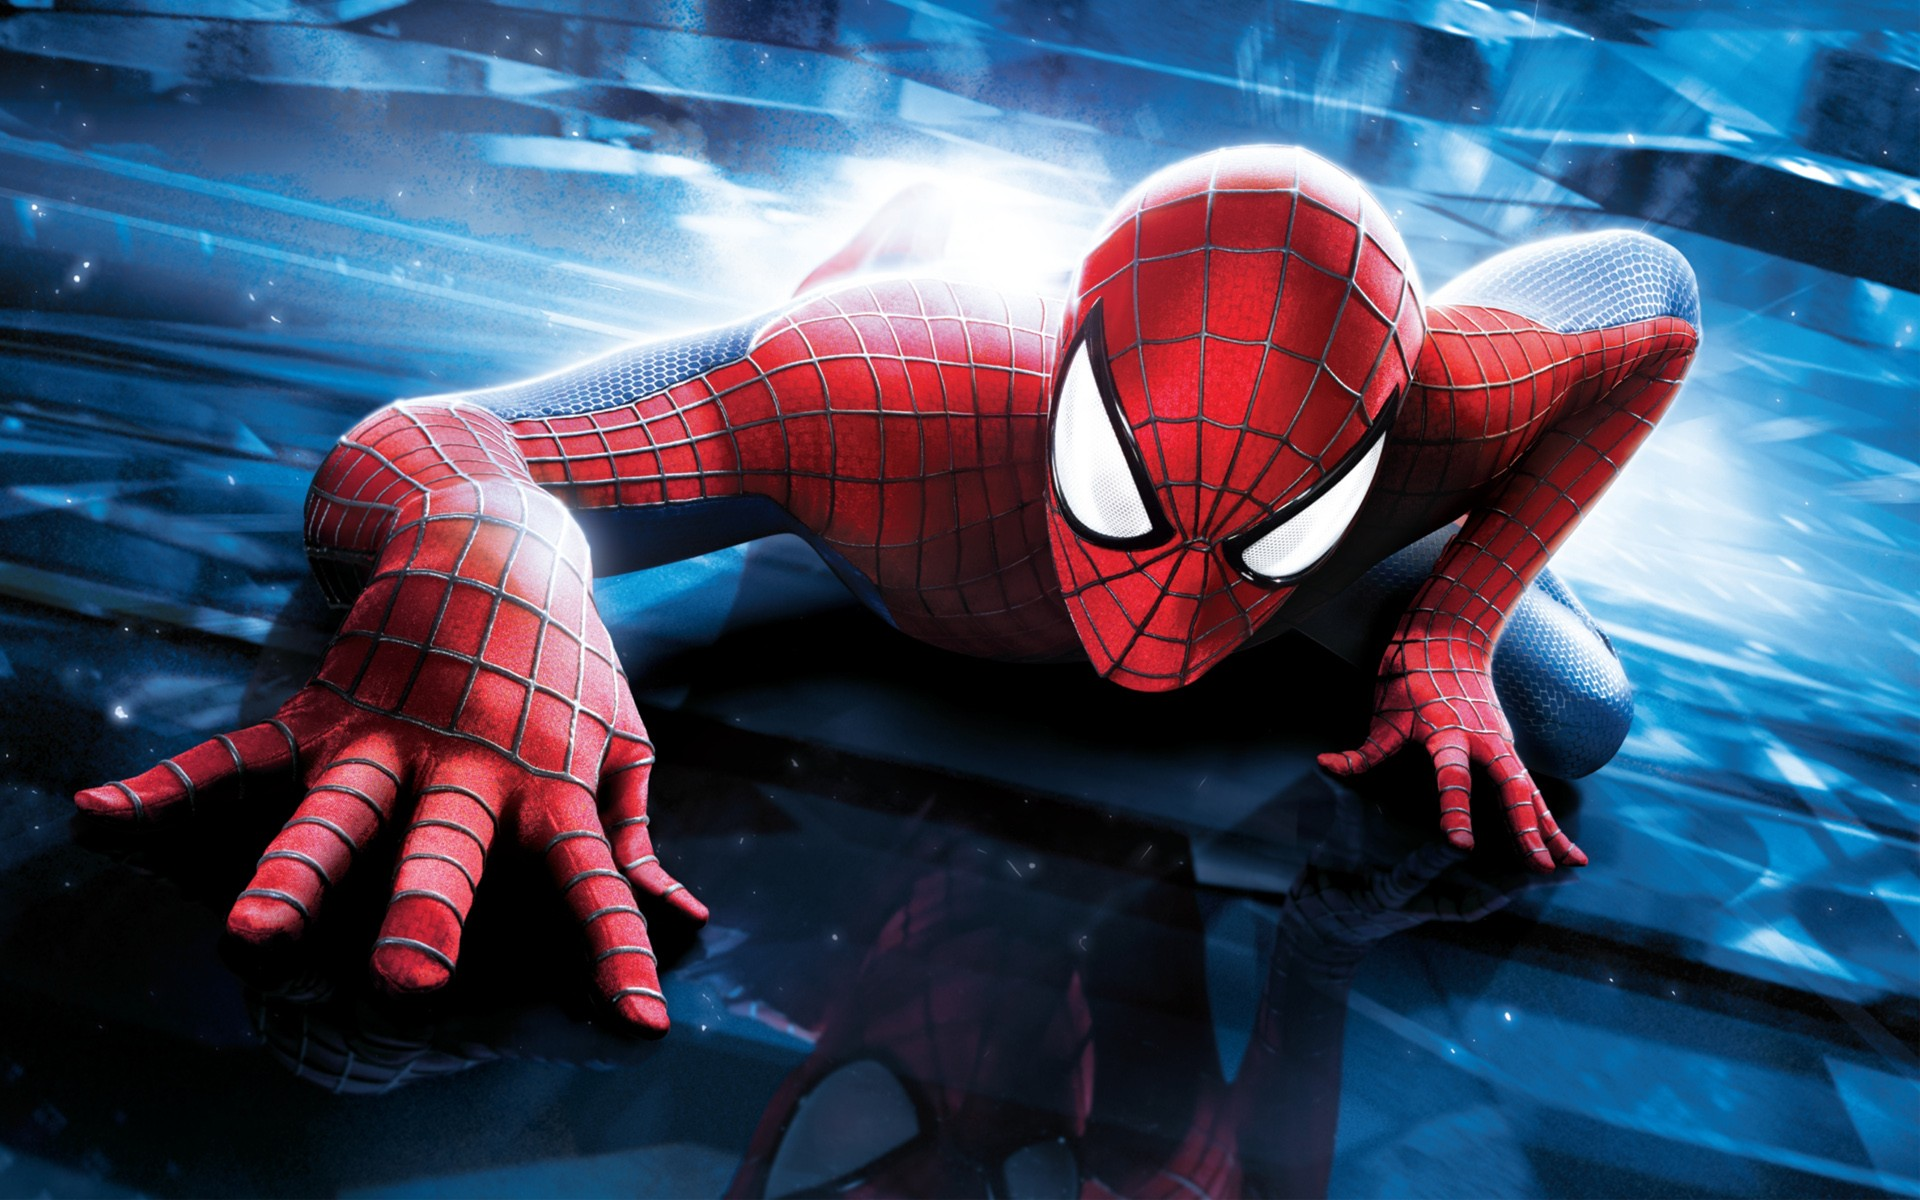 4k spiderman wallpapers high quality download free - Spider hd images download ...